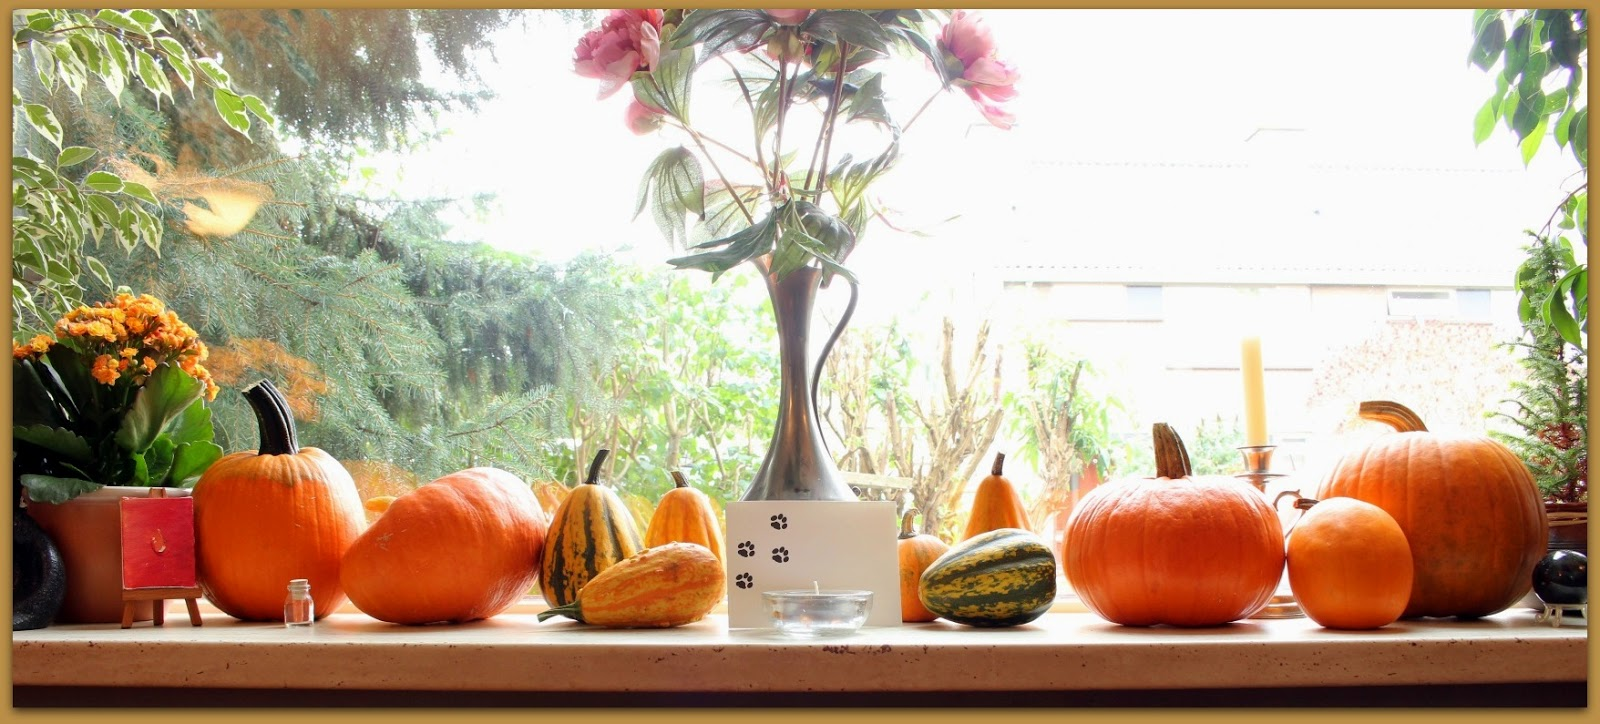 selfgrown pumkins in our windowsill